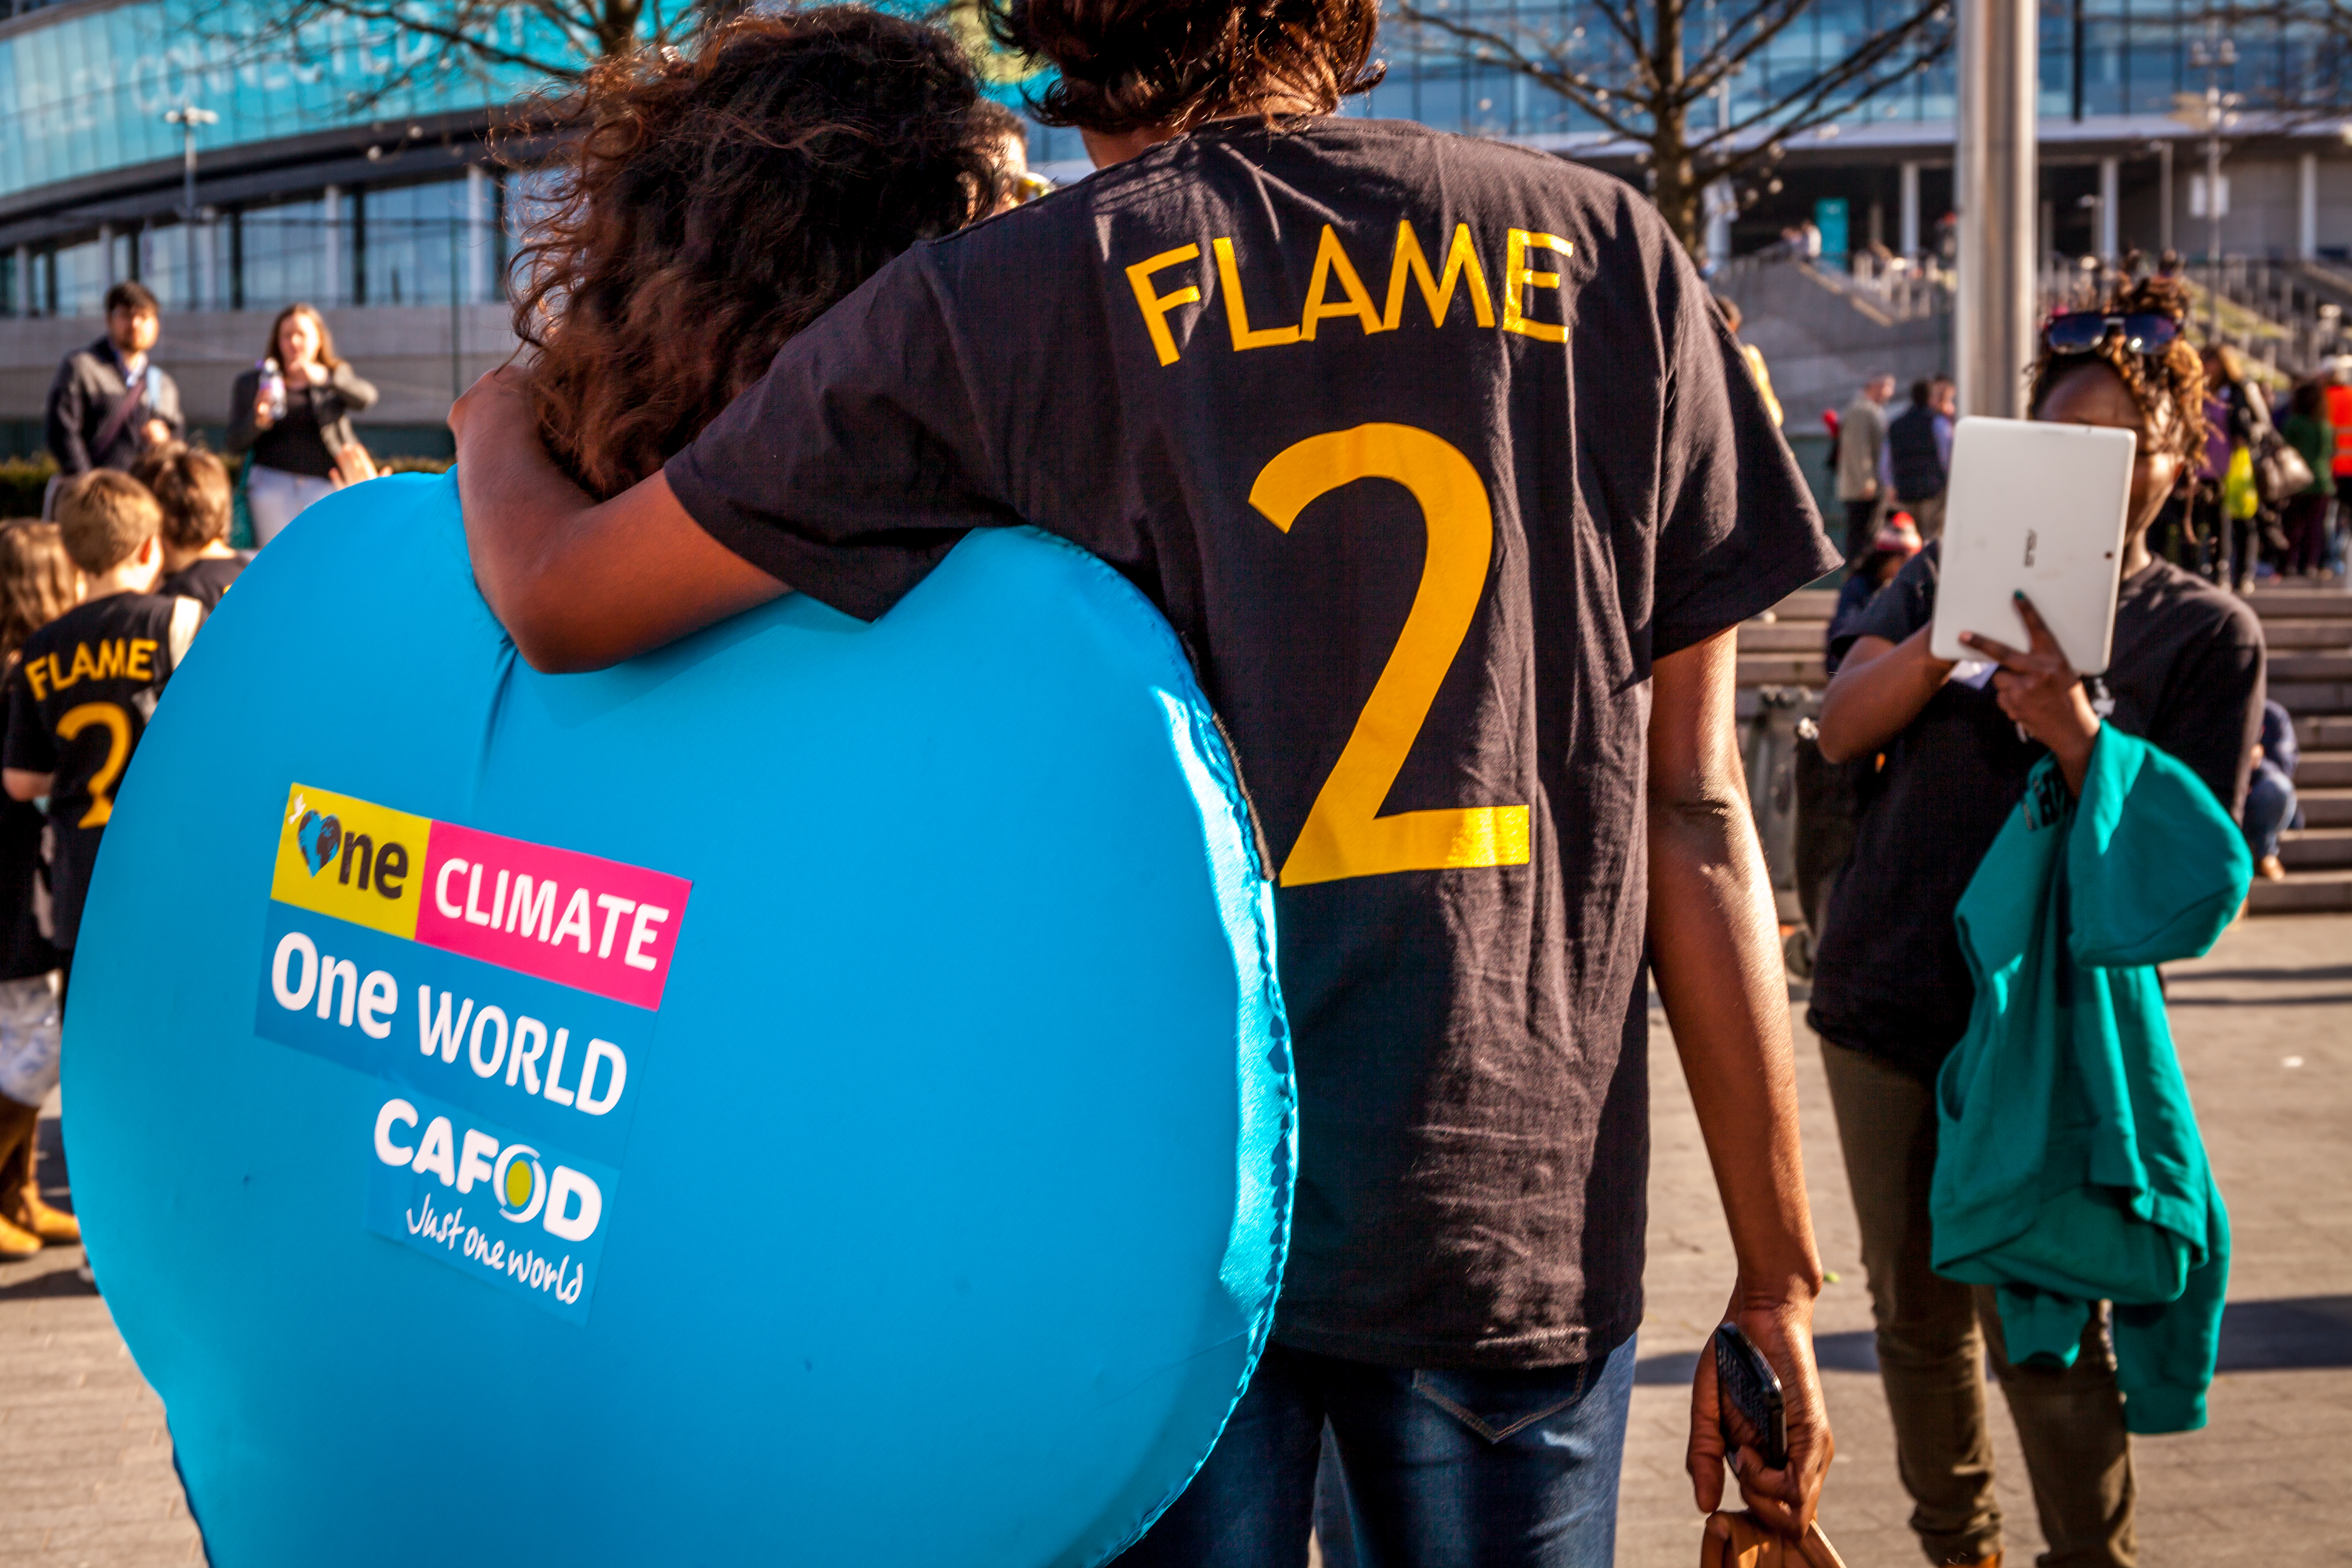 One Climate One World CAFOD heart costume at Flame2 Wembley